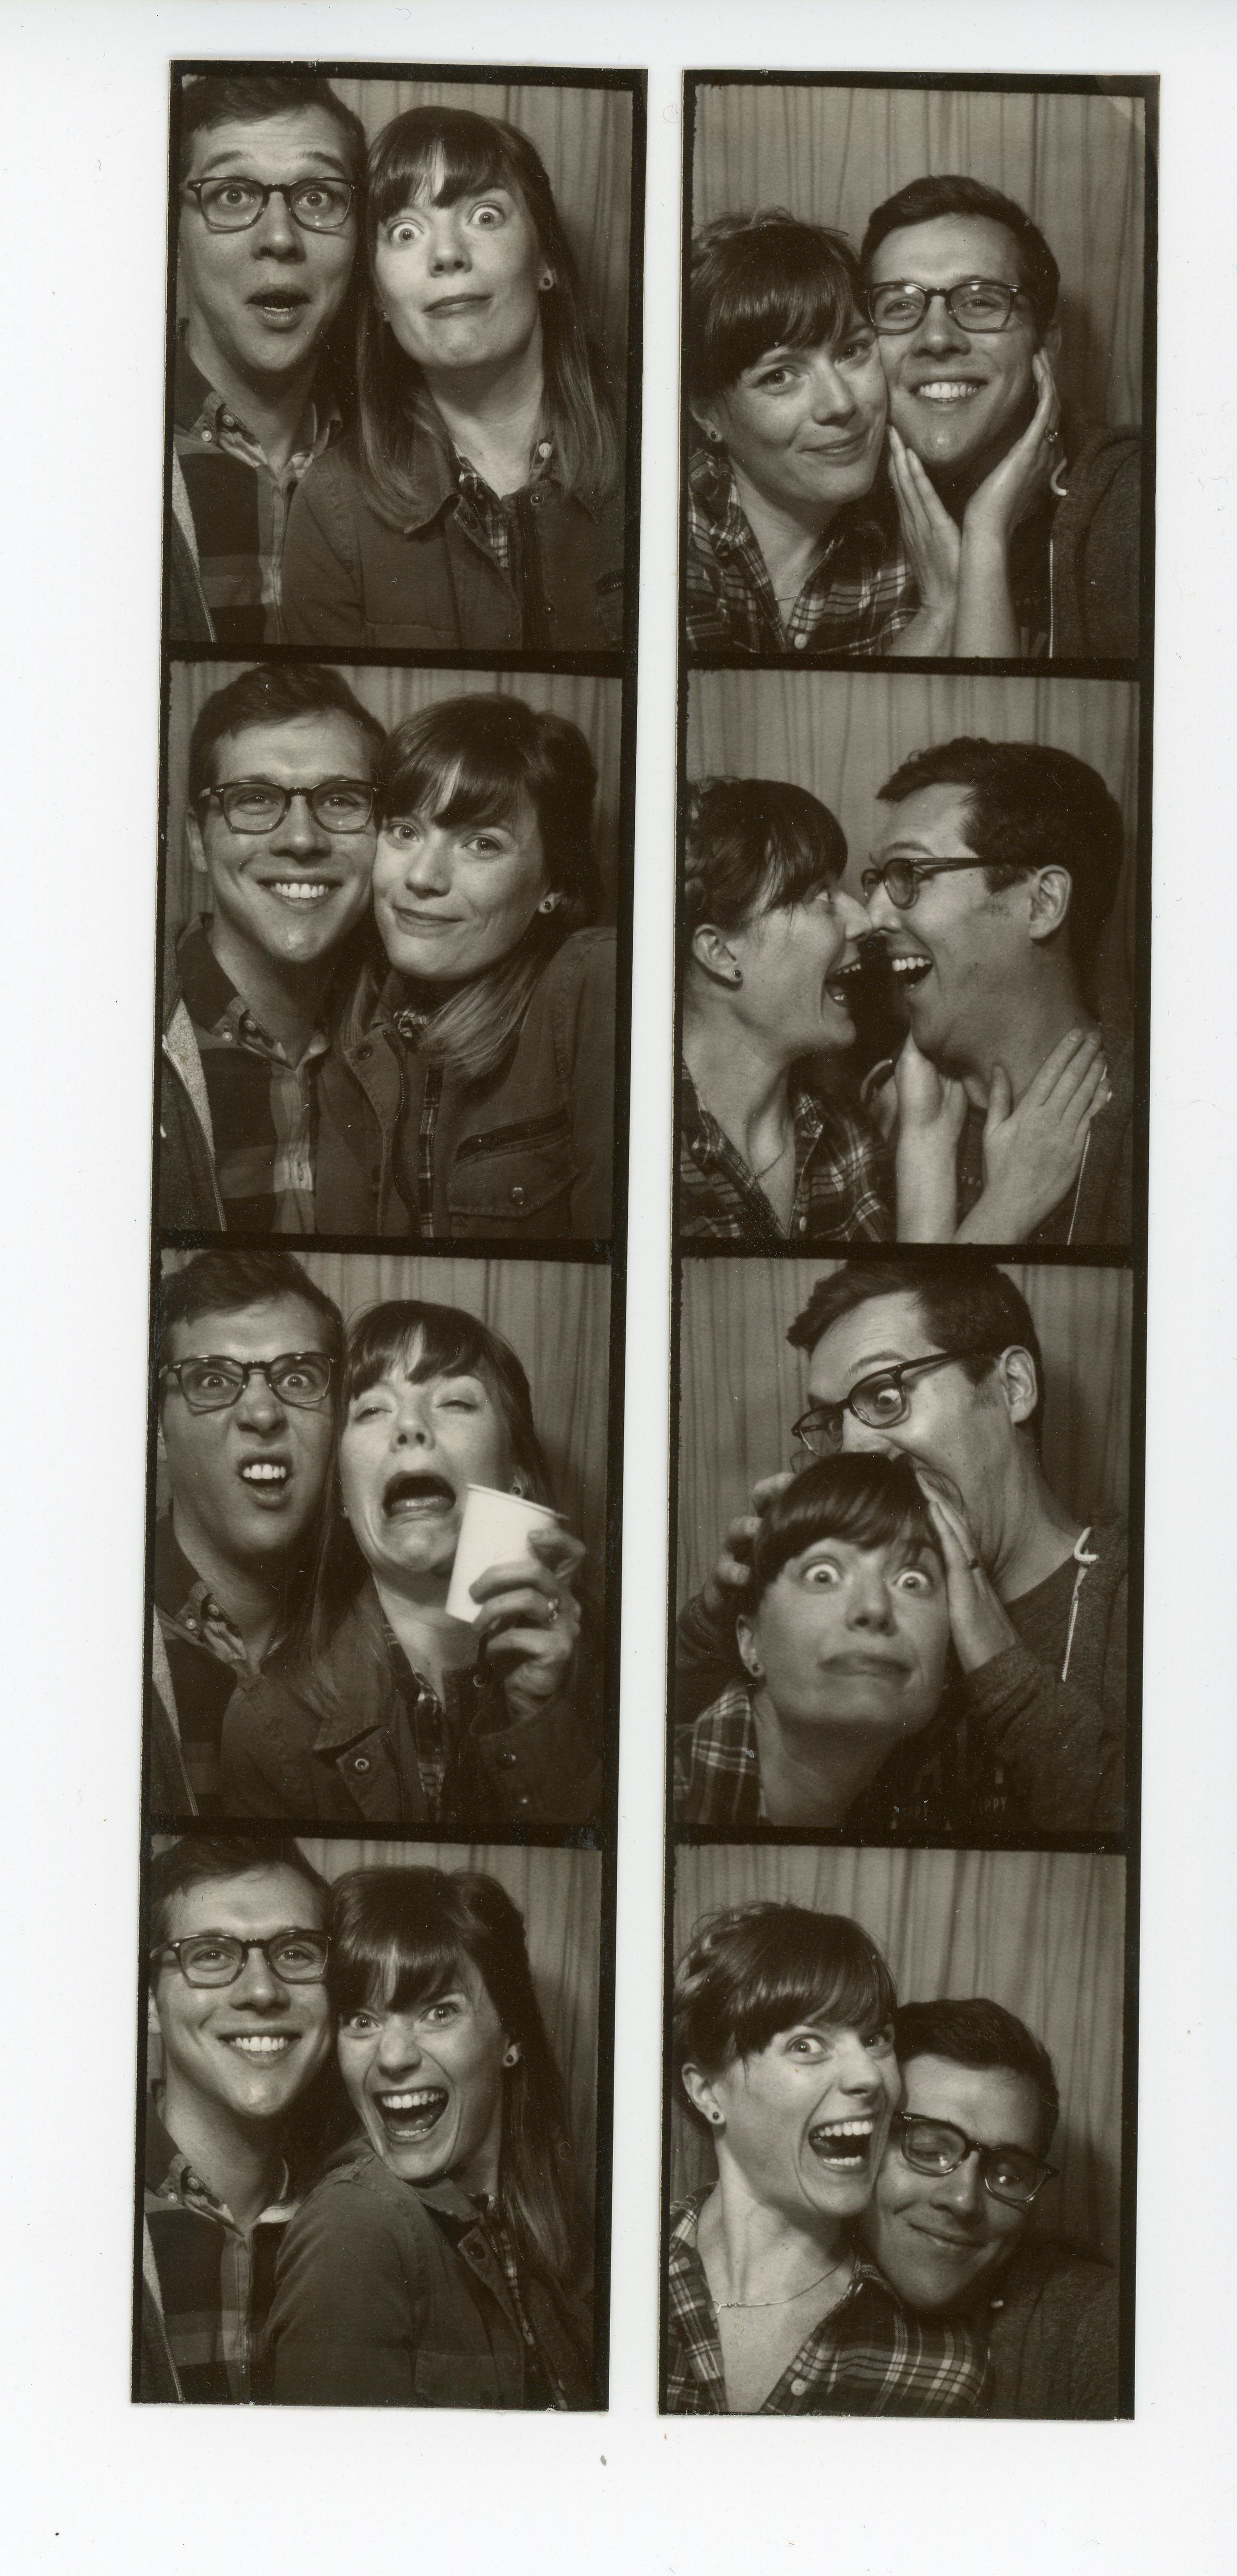 photobooth pics from the ace hotel in nyc this may after NSS